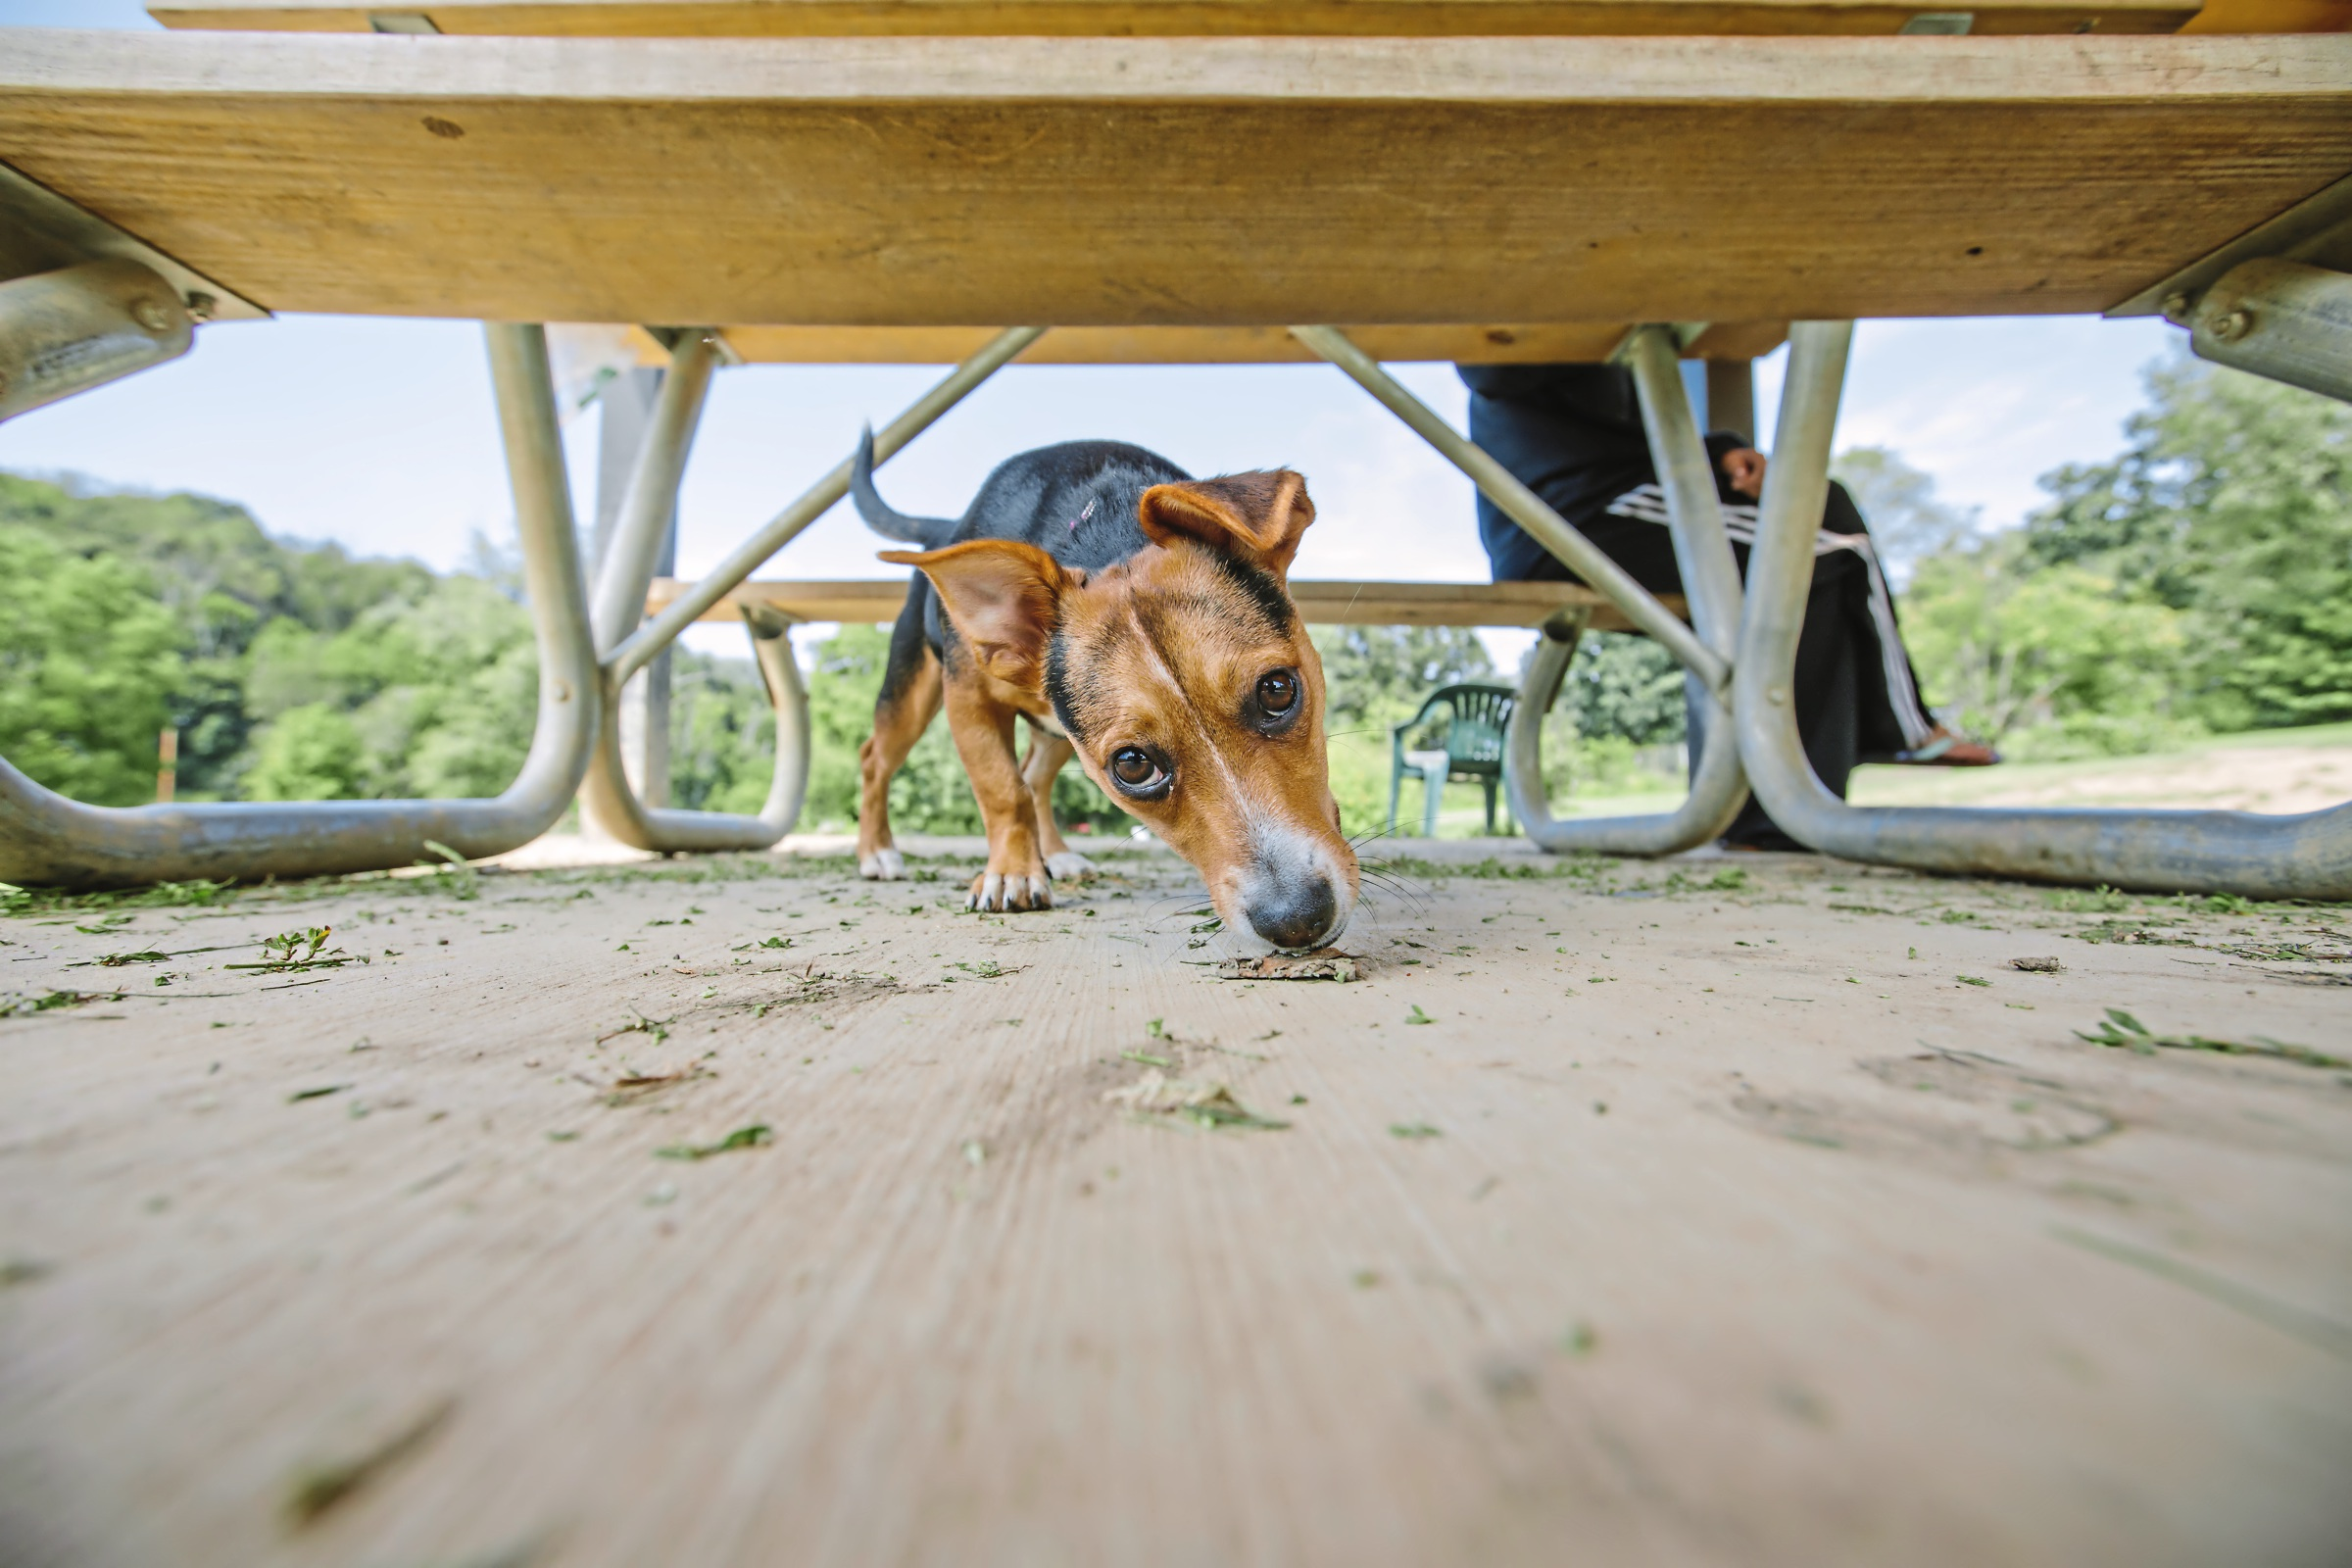 20170829arDogParks05-4 Madison, owned by Emily Kiener of Bethel Park, inspects the area underneath a picnic table at the South Park Dog Park.